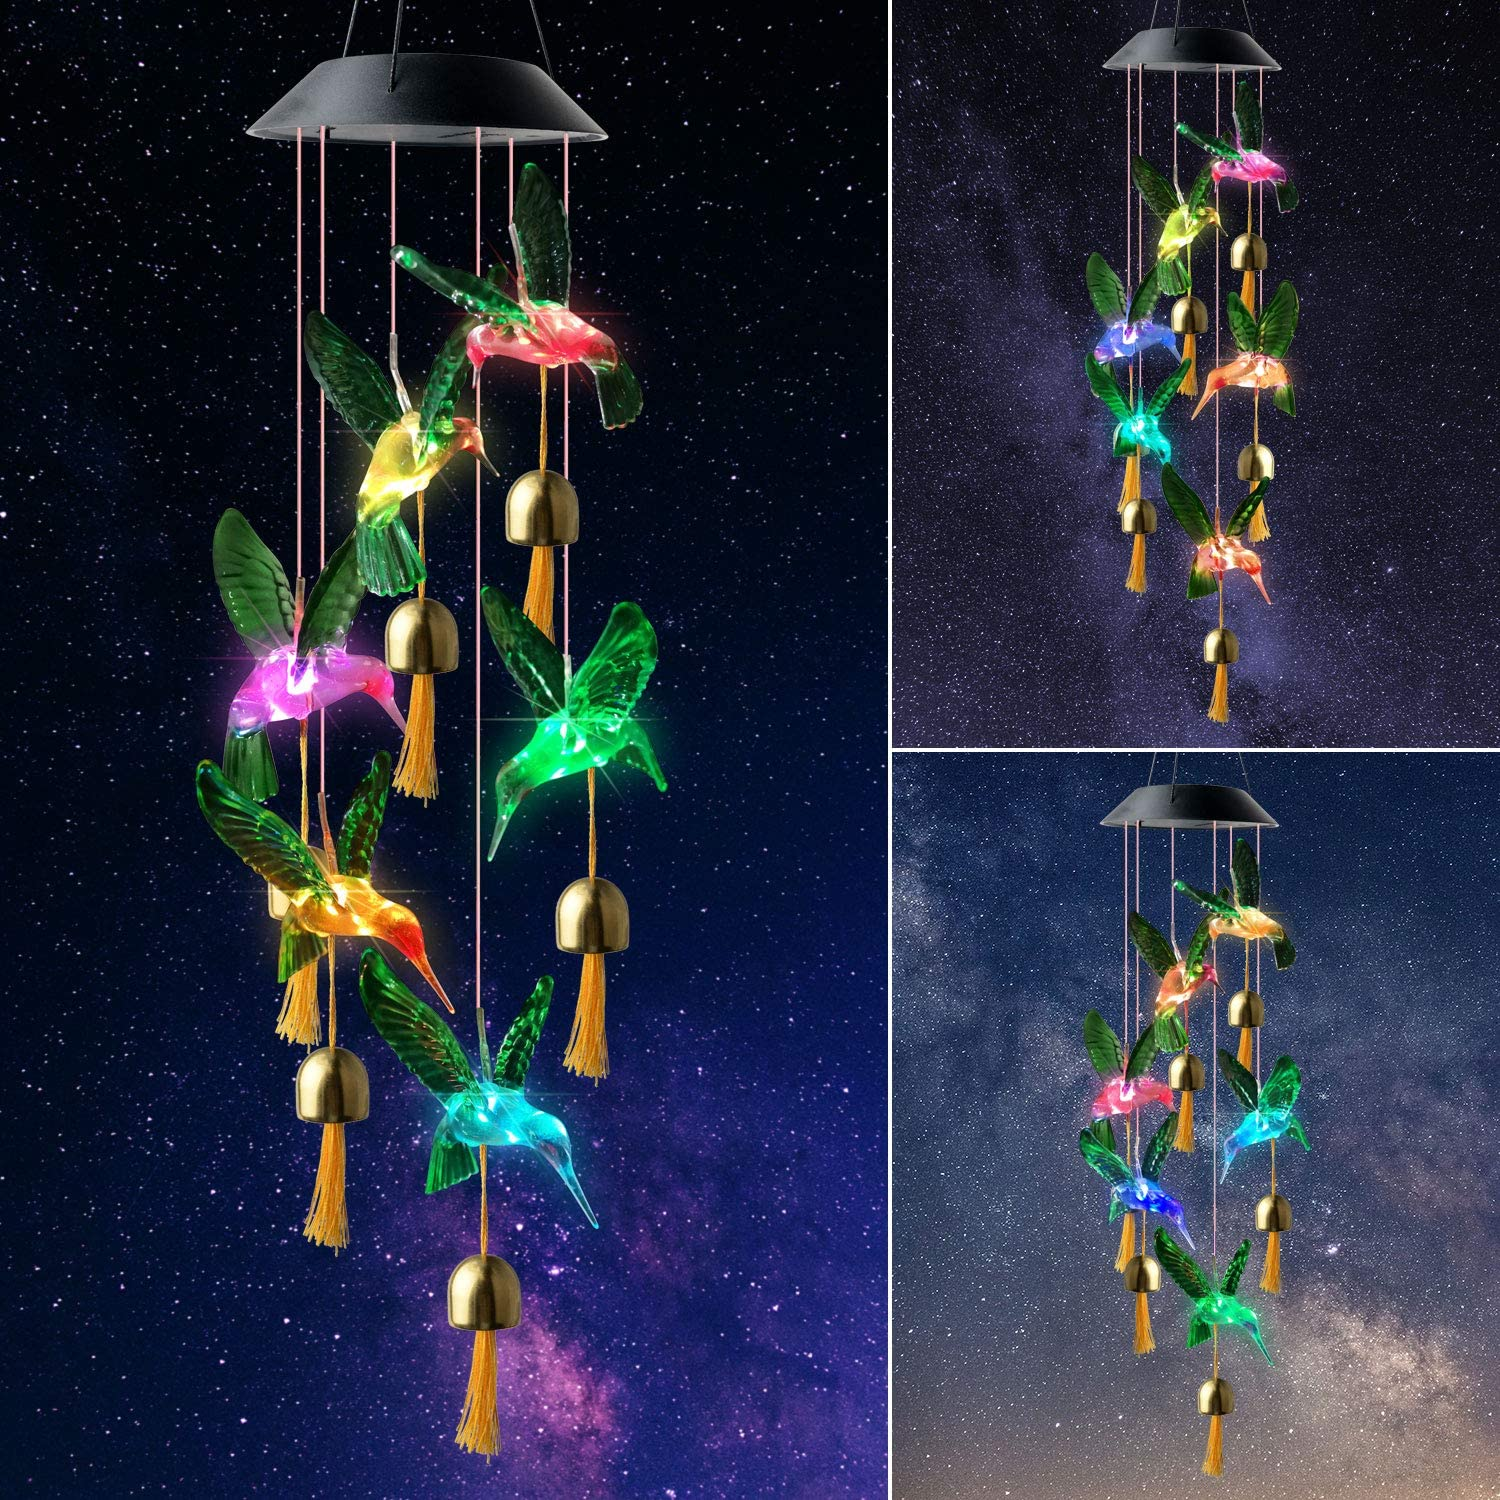 ShangTianFeng Green Hummingbird Bell with Black Cover Birthday Gifts mom+Gifts Gifts for mom Unique Birthday Gifts for Women Gifts for Grandma Hummingbird Solar Wind Chimes Gardening Gifts